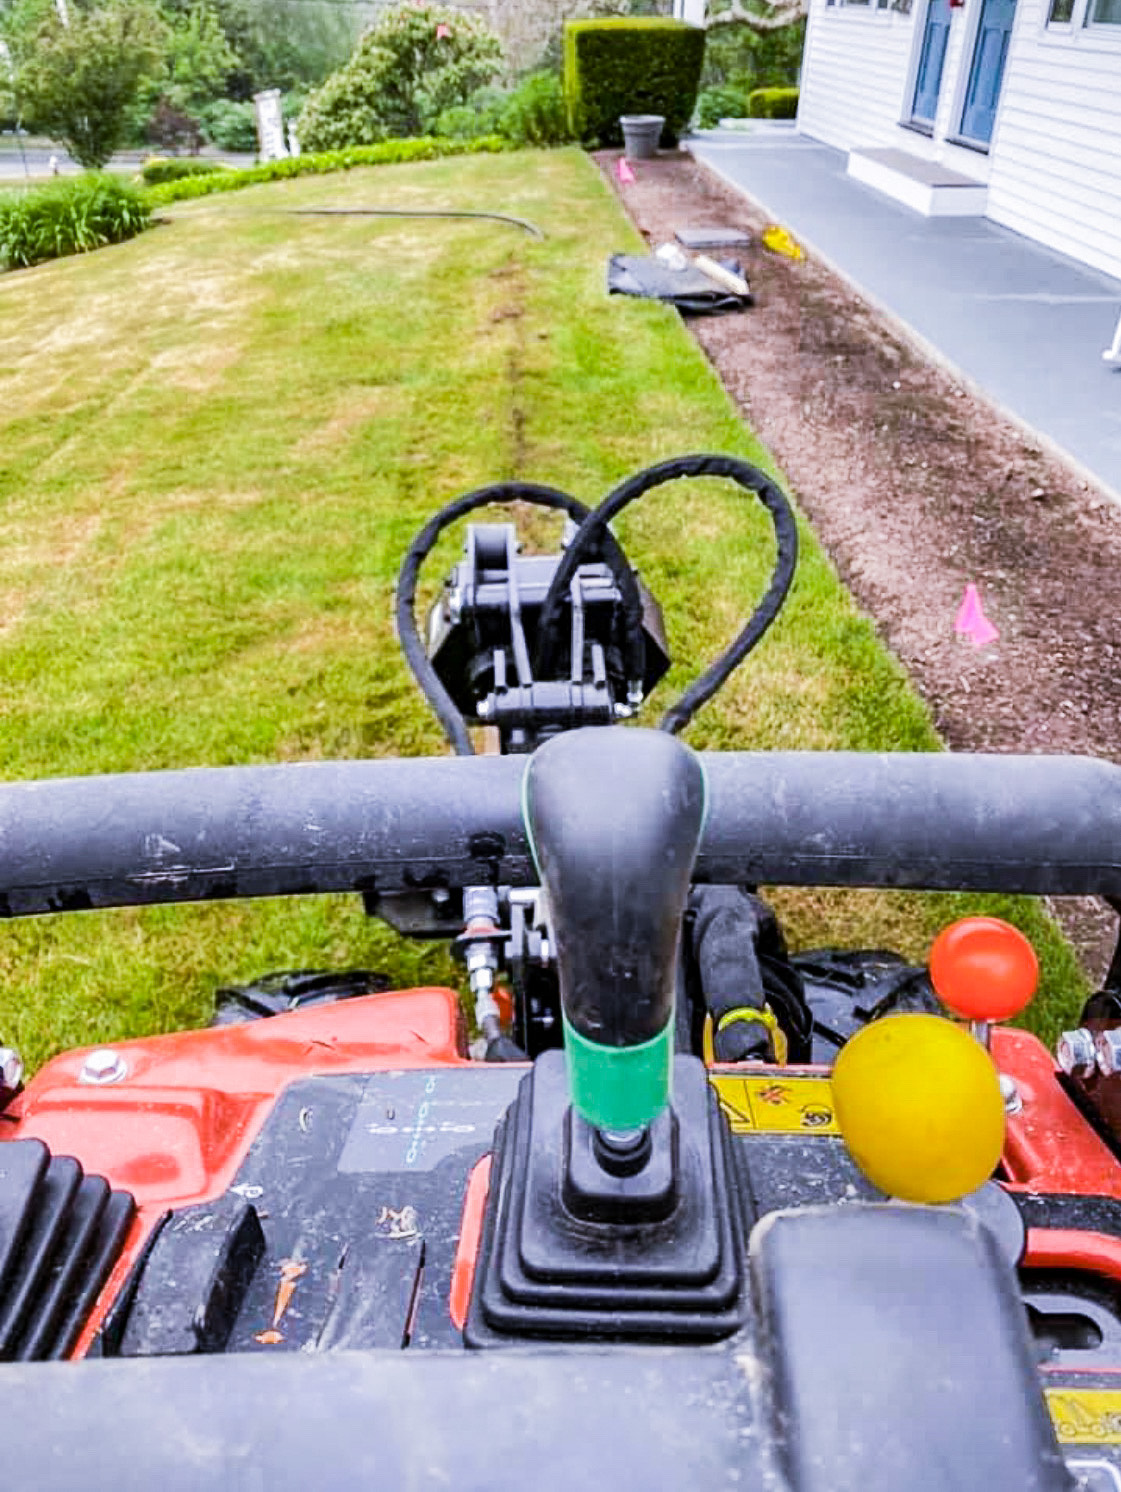 Mike Santos Irrigation - Ditch Witch running pipe on existing lawn